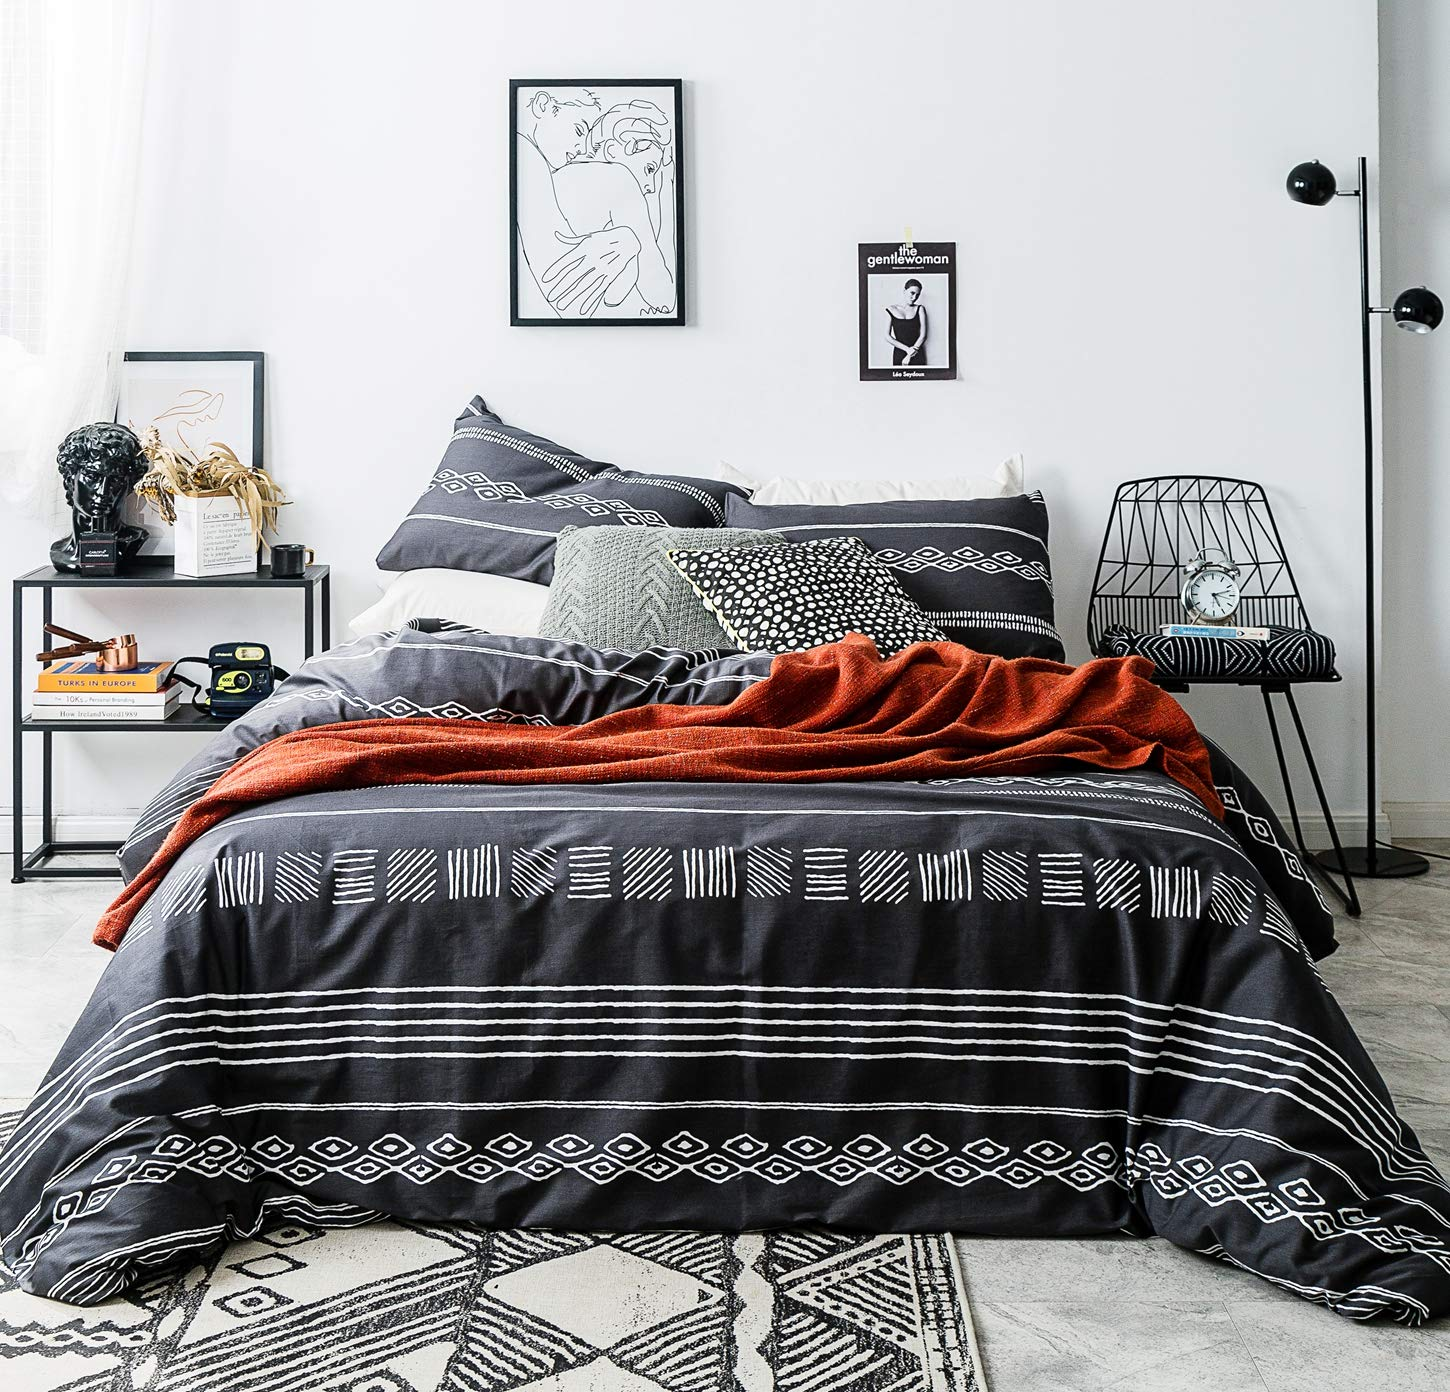 SUSYBAO 3 Piece Duvet Cover Set 100% Natural Cotton Queen Size Black and White Aztec Bedding Set with Zipper Ties 1 Geometric Duvet Cover 2 Pillowcases Luxury Quality Breathable Comfortable Durable